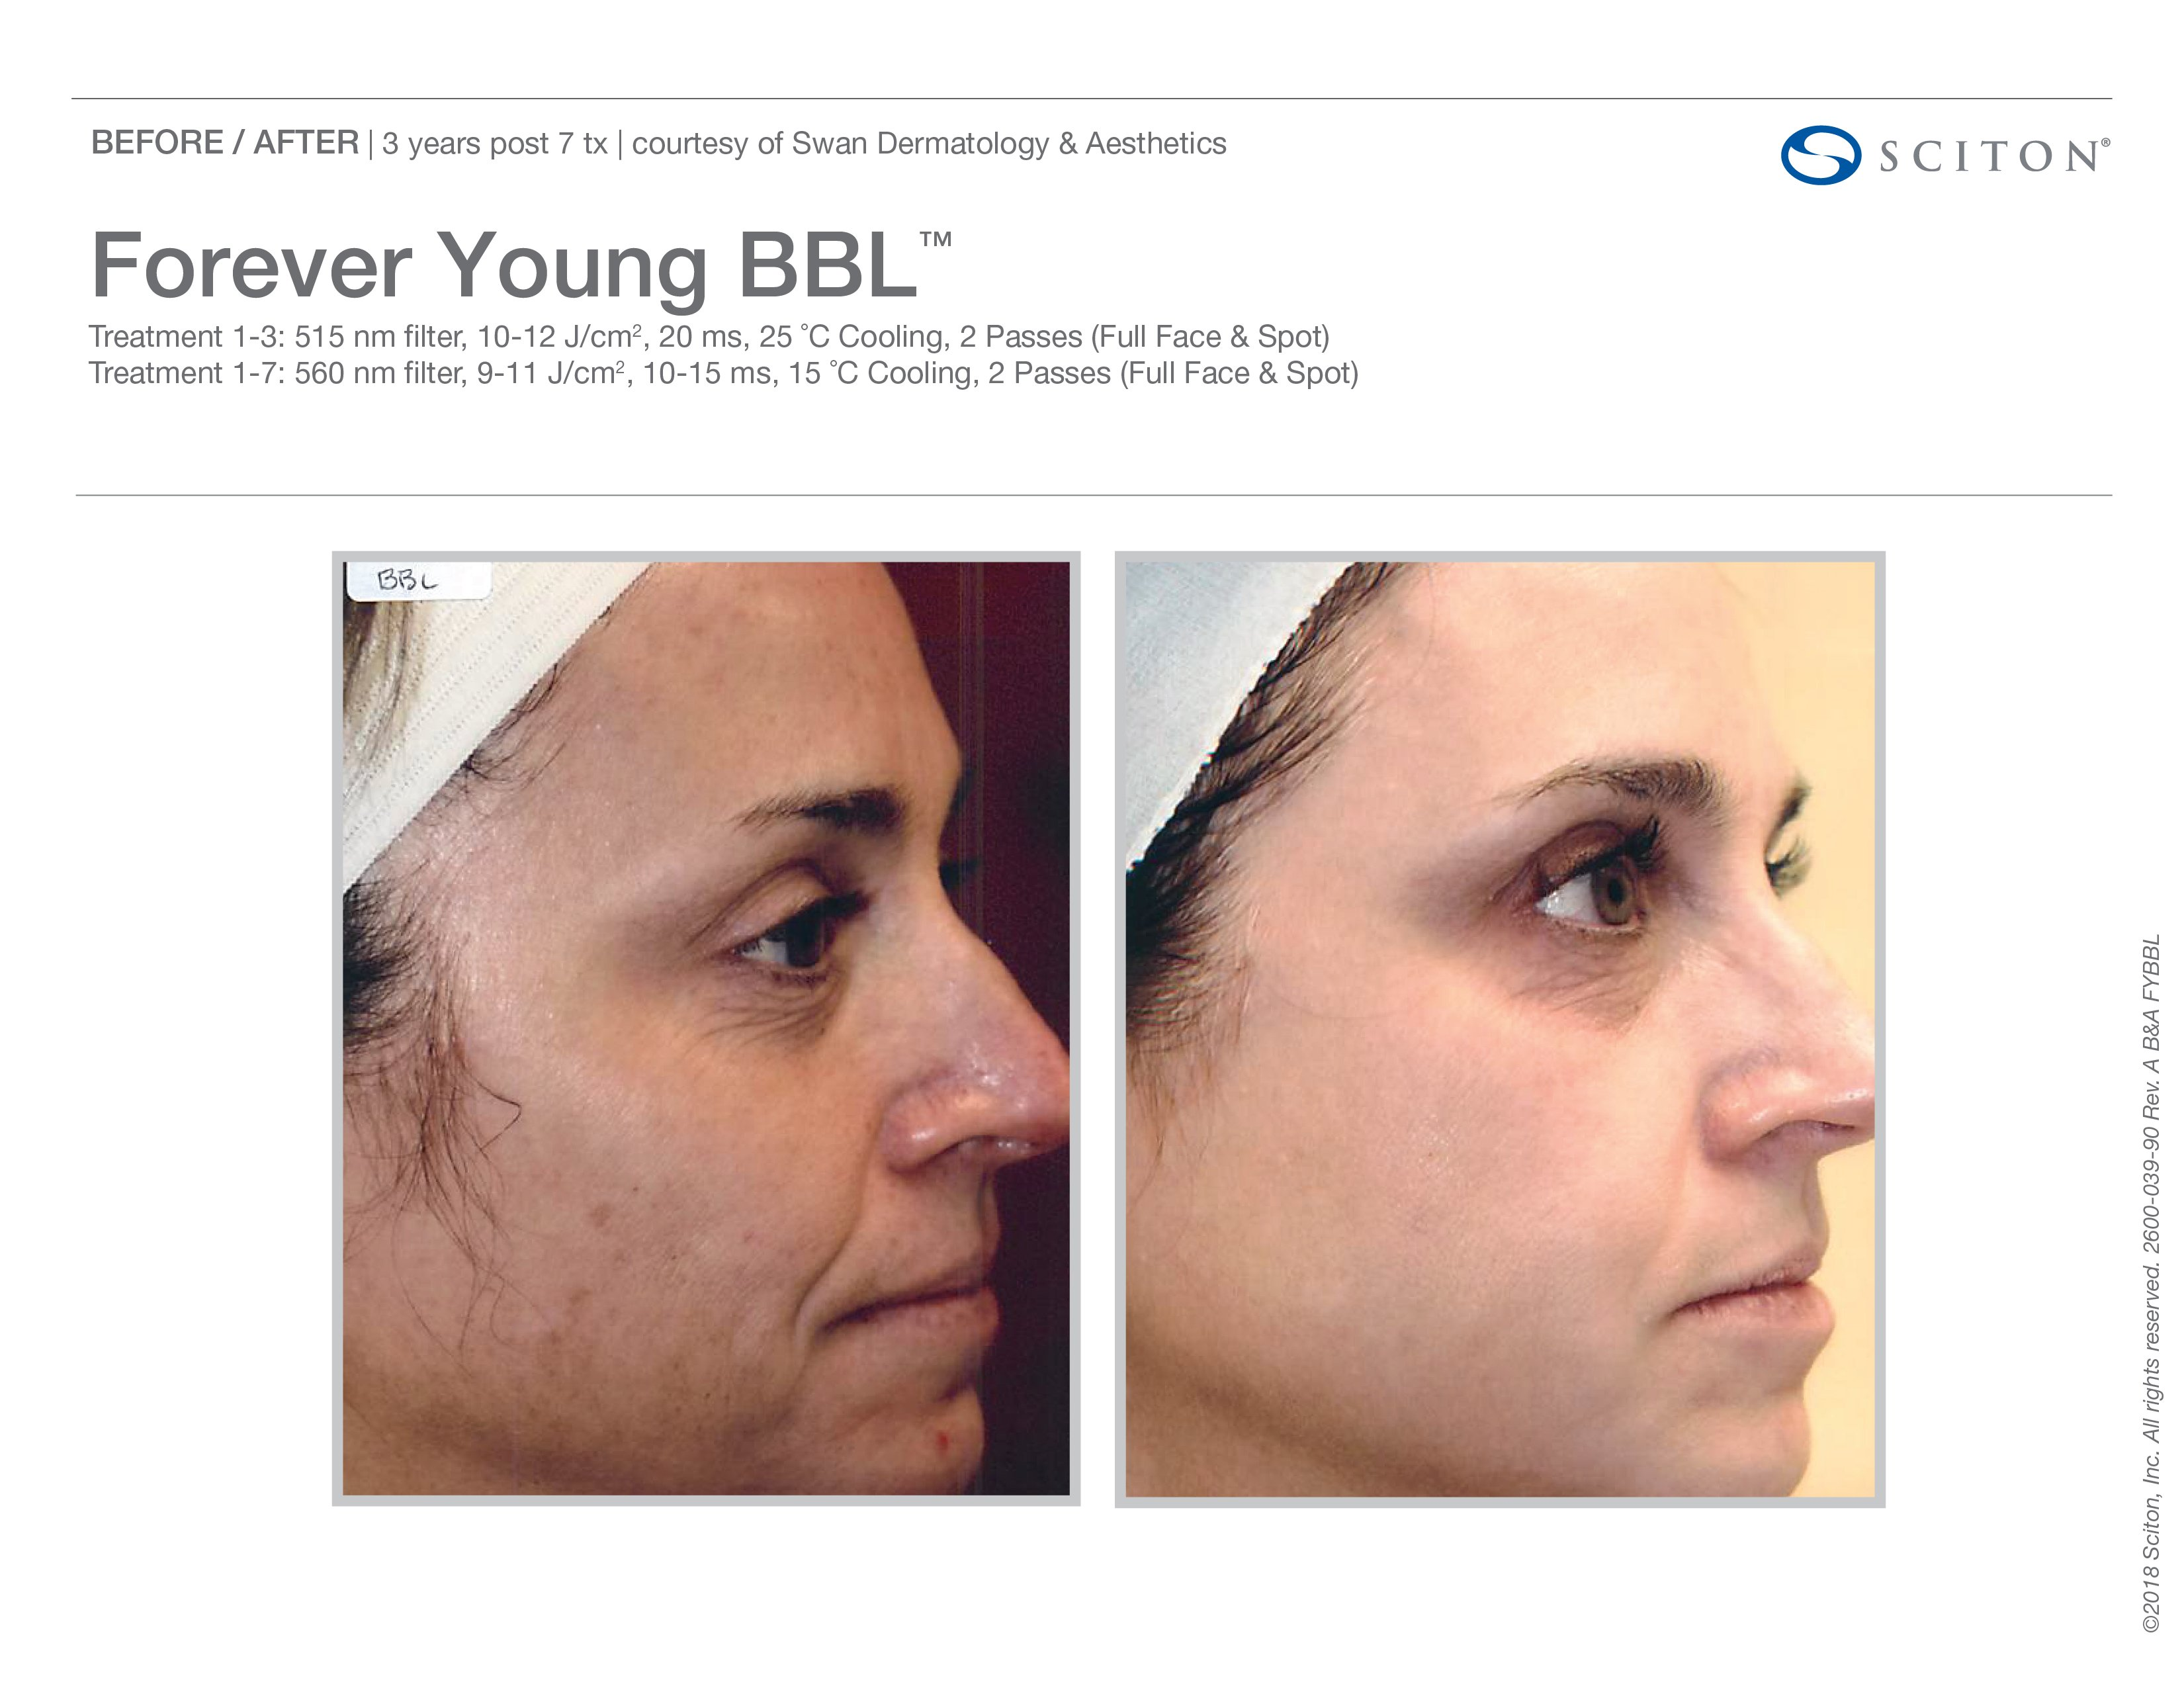 FYBBL-before-after-photo-9